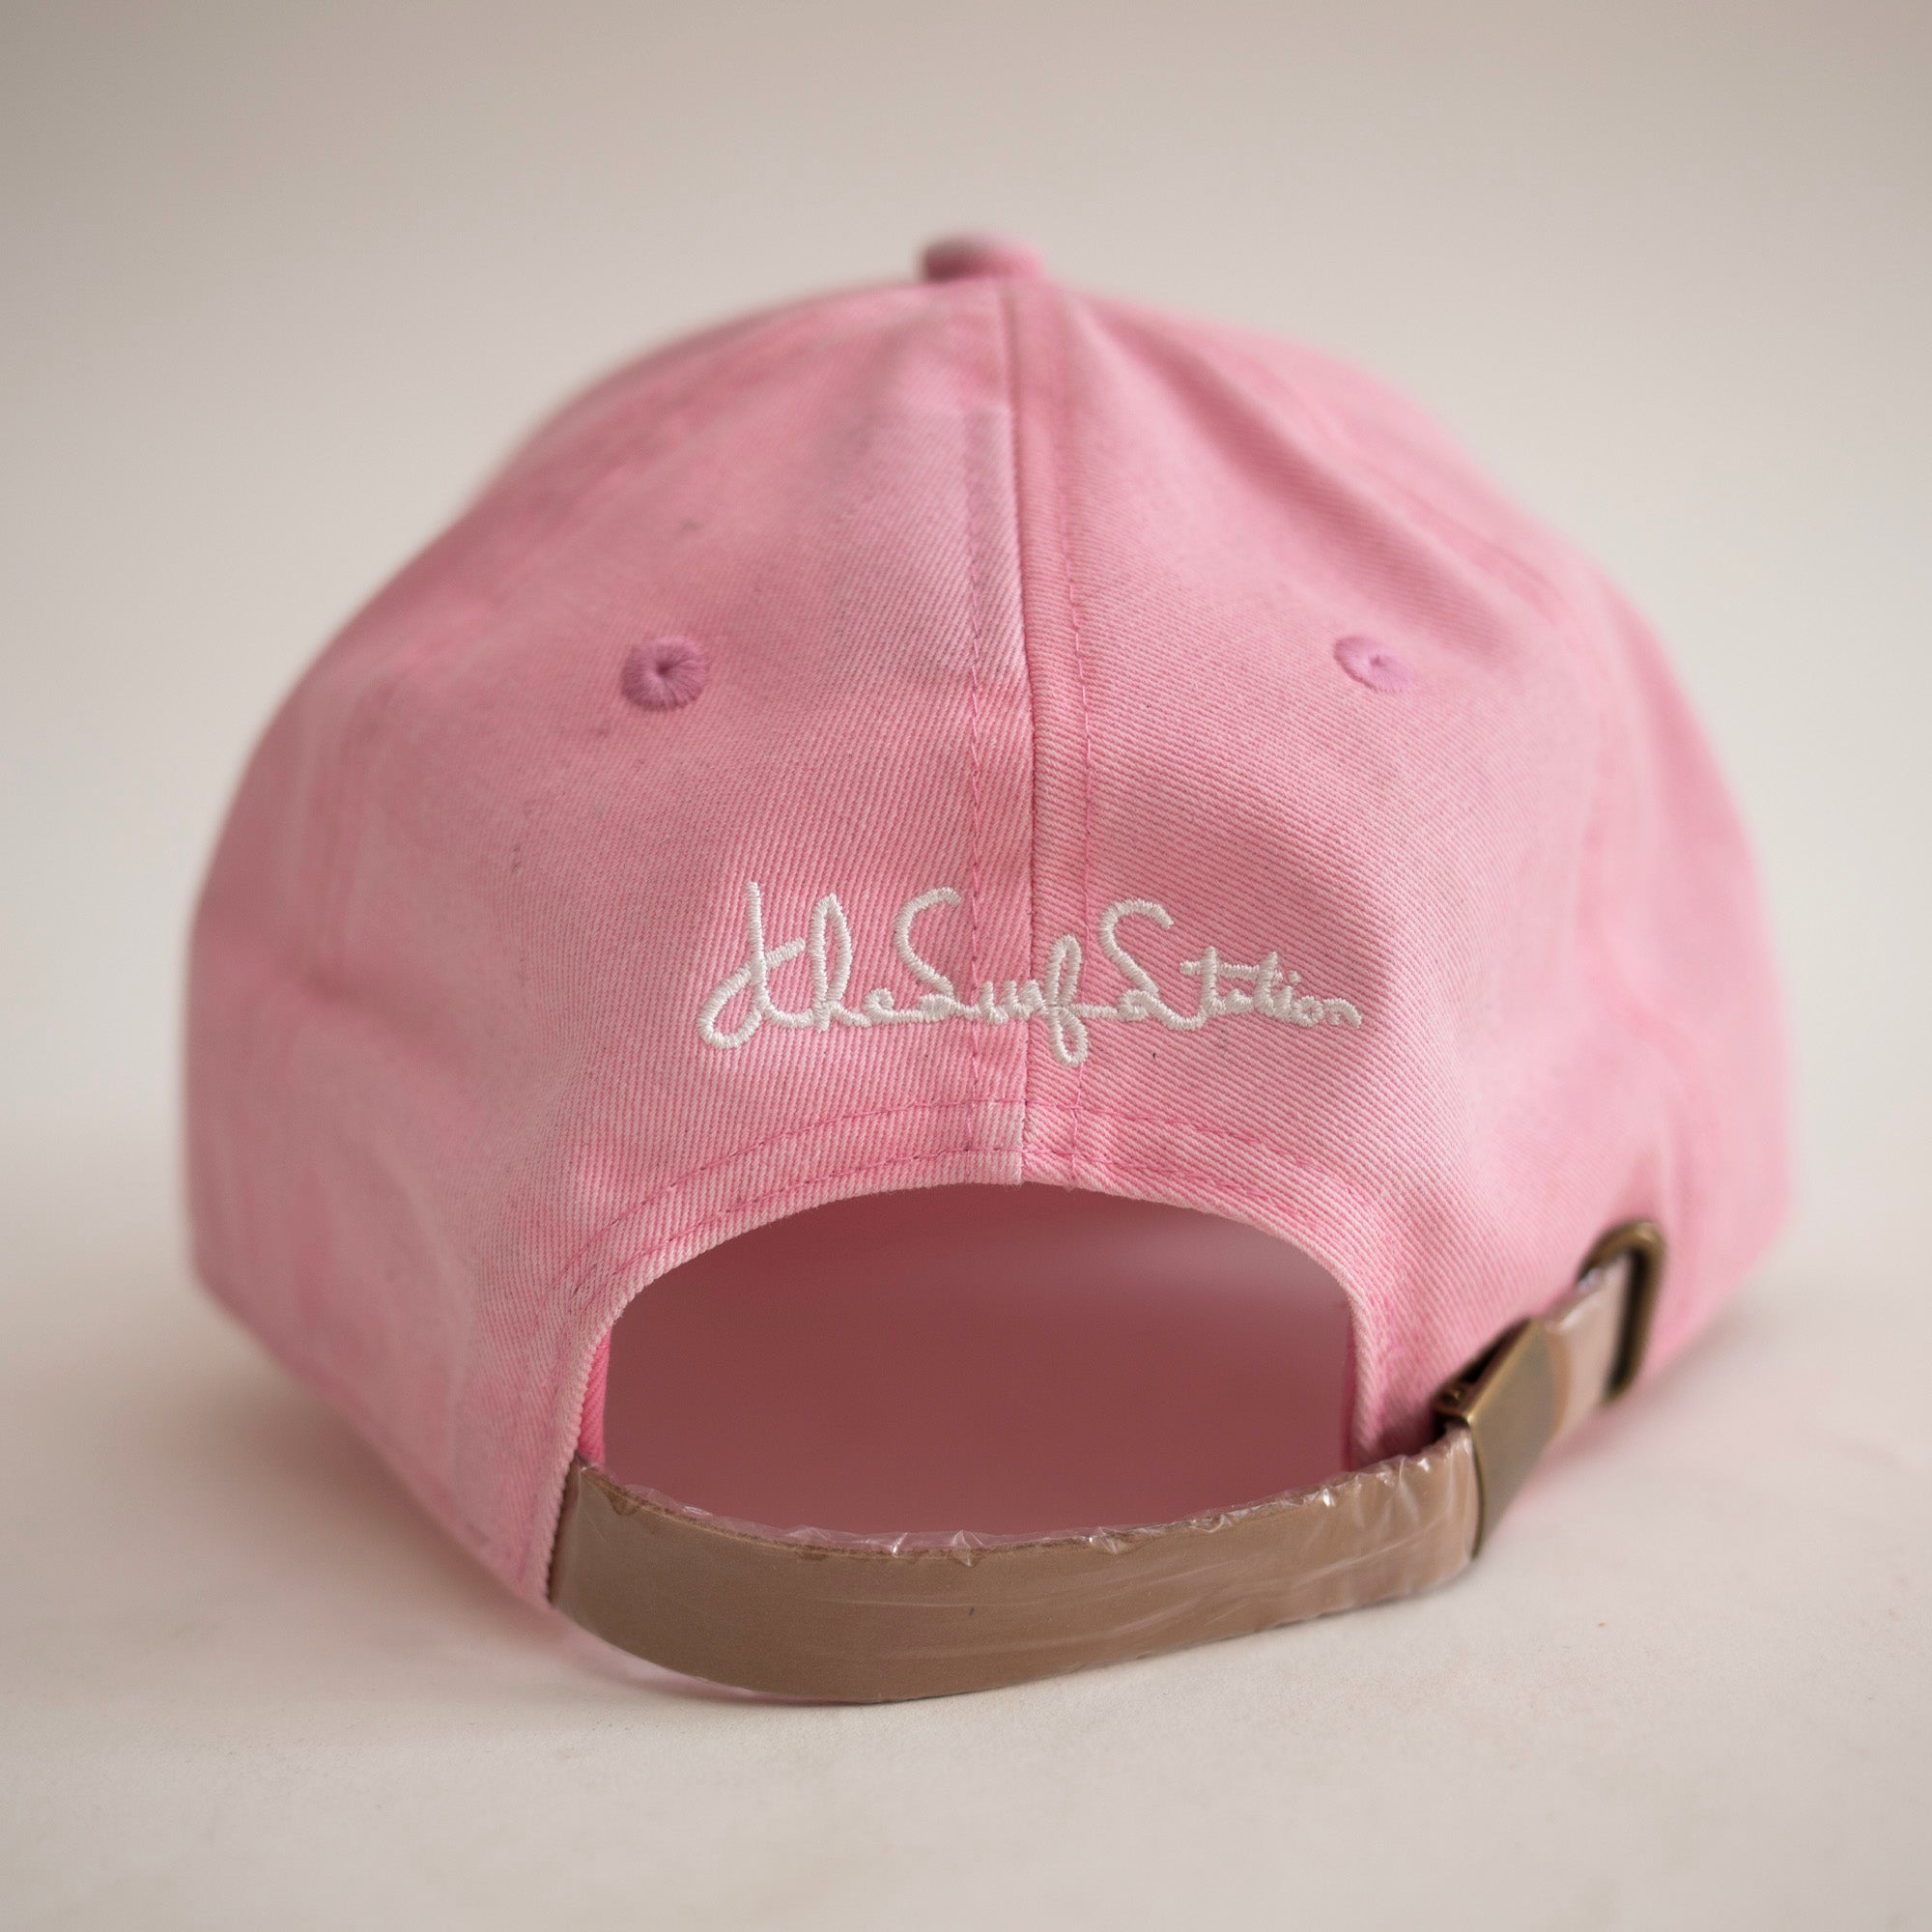 Surf Station The Code Women's Strap Buckle Hat